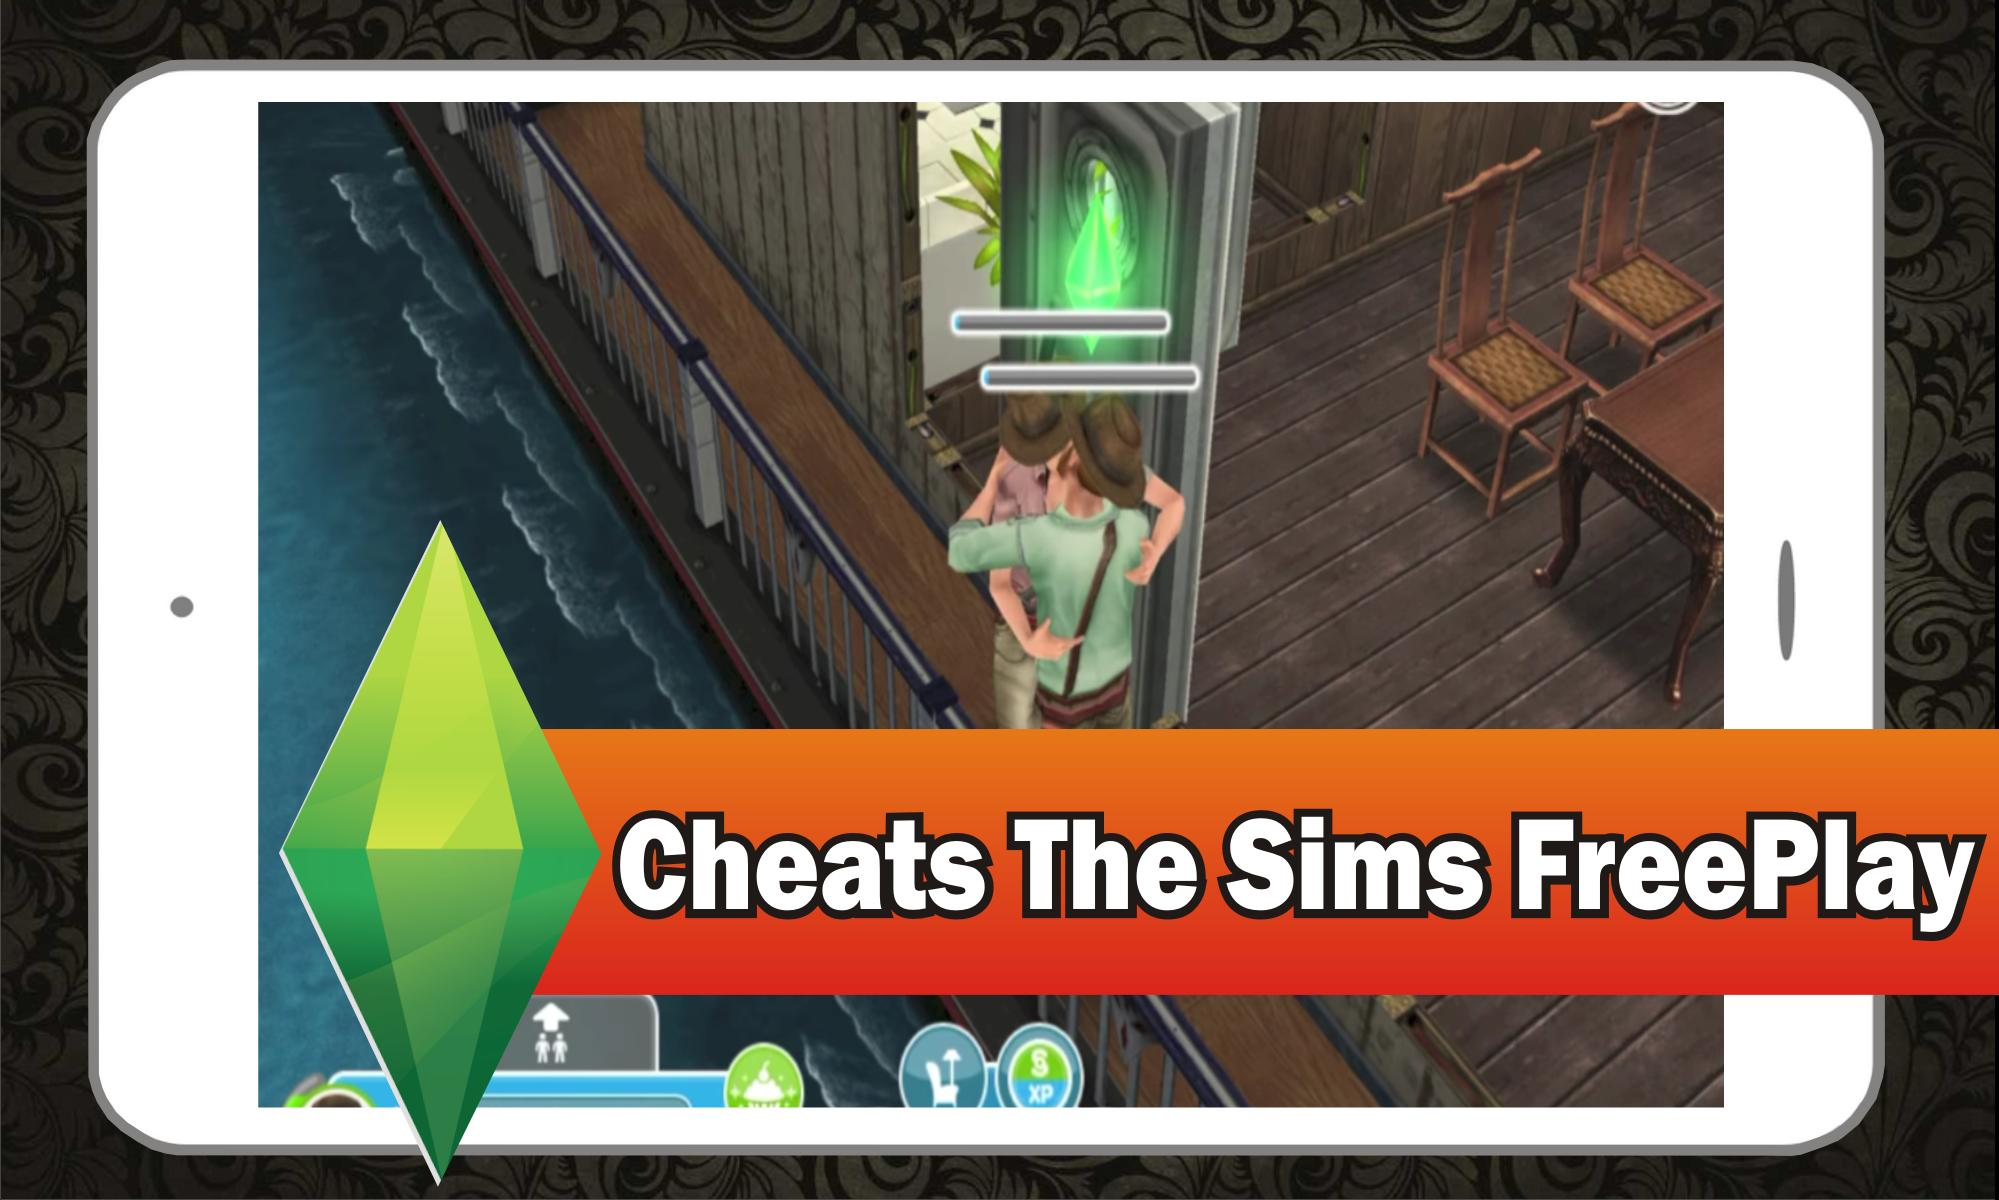 sims freeplay app cheats android